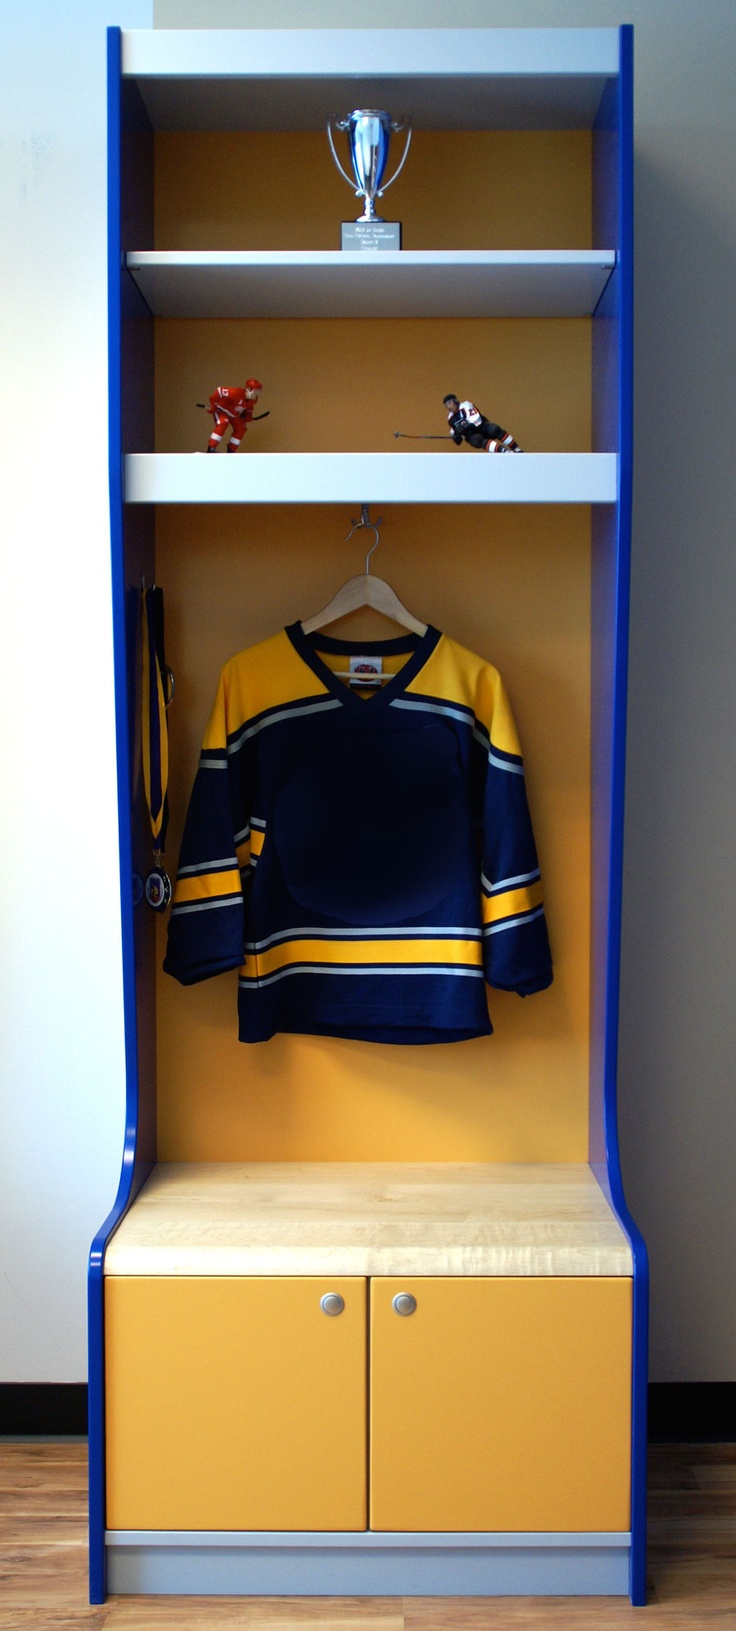 """Sport Locker- Yellow, Grey and Blue     Sport locker for your kids room, game room or garage. Sport Interiors creates high quality sports sport furniture and accessories. We can customize our products with your team's favorite colors! Made in the U.S.A.  Does not include tax or shipping!    Product Attributes:     Base Model:  • Dimensions: 28""""x84""""x22""""  • Solid Maple Seating Bench  • Doors on Lower Shelf  • Flush Faced Door Handles  • Three Shelves  • Jersey Hooks  • Hardware"""